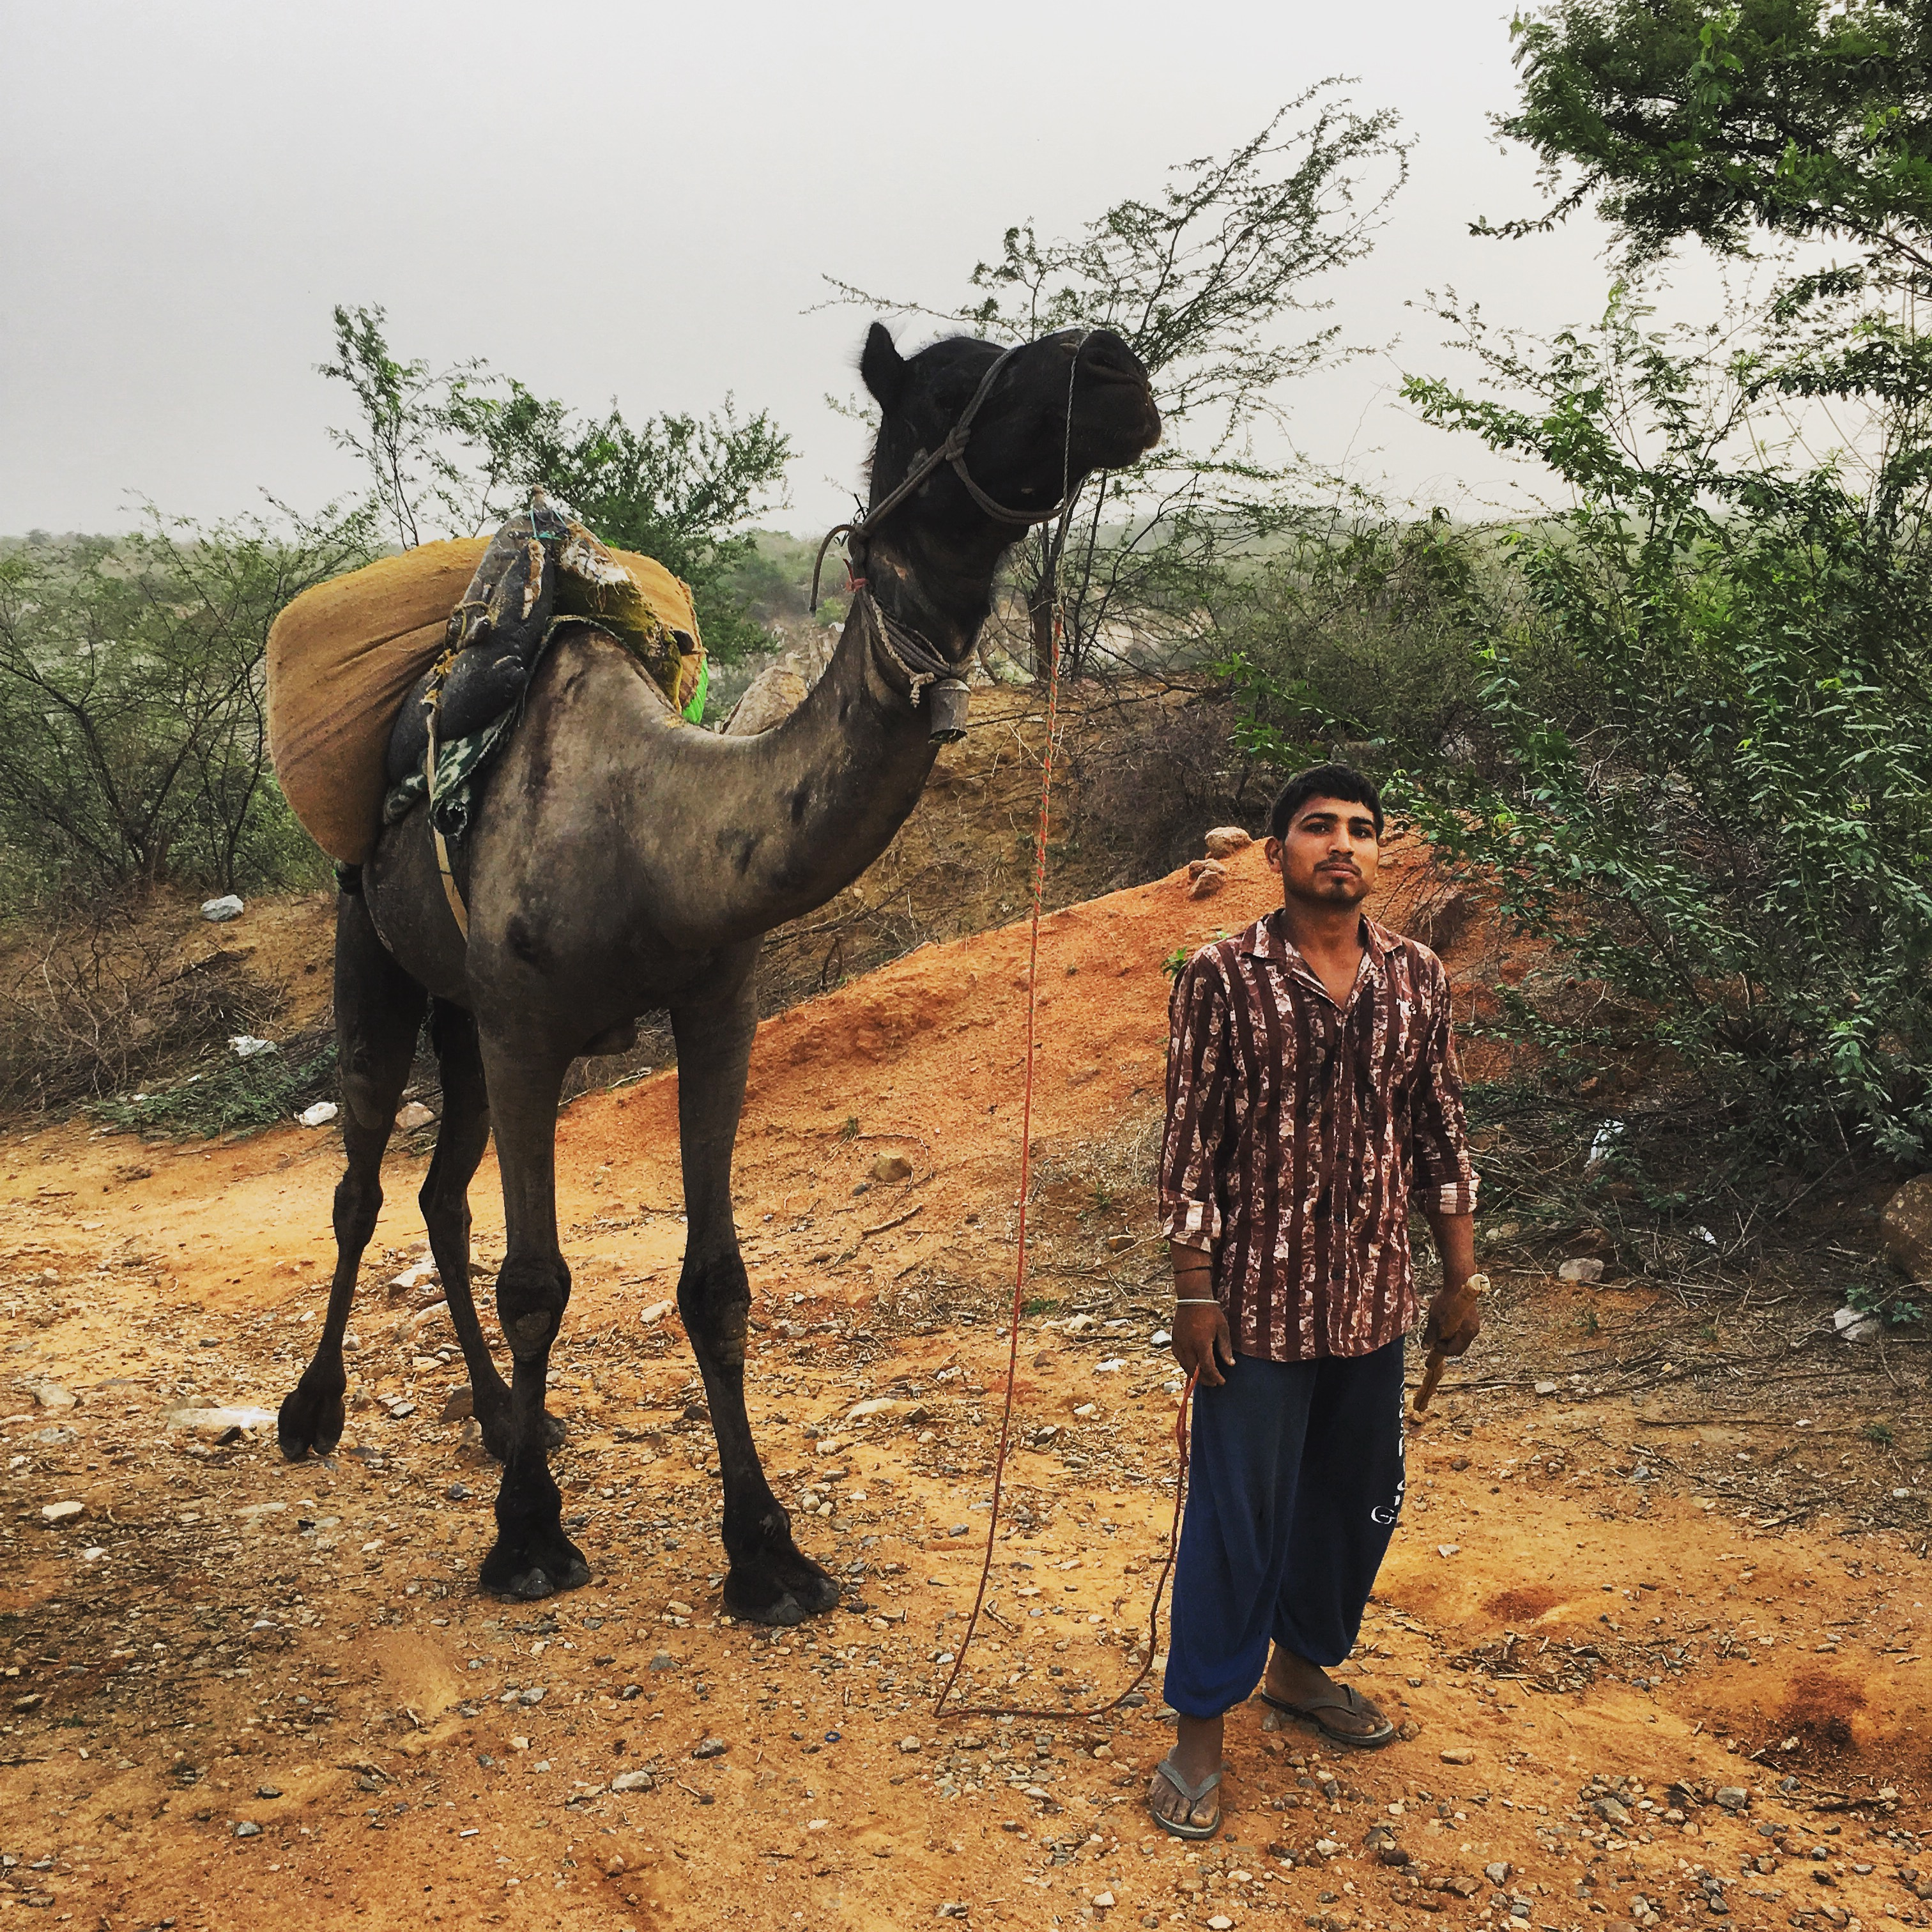 Leopards, camels, thorns: the Asola XC stage race, Delhi